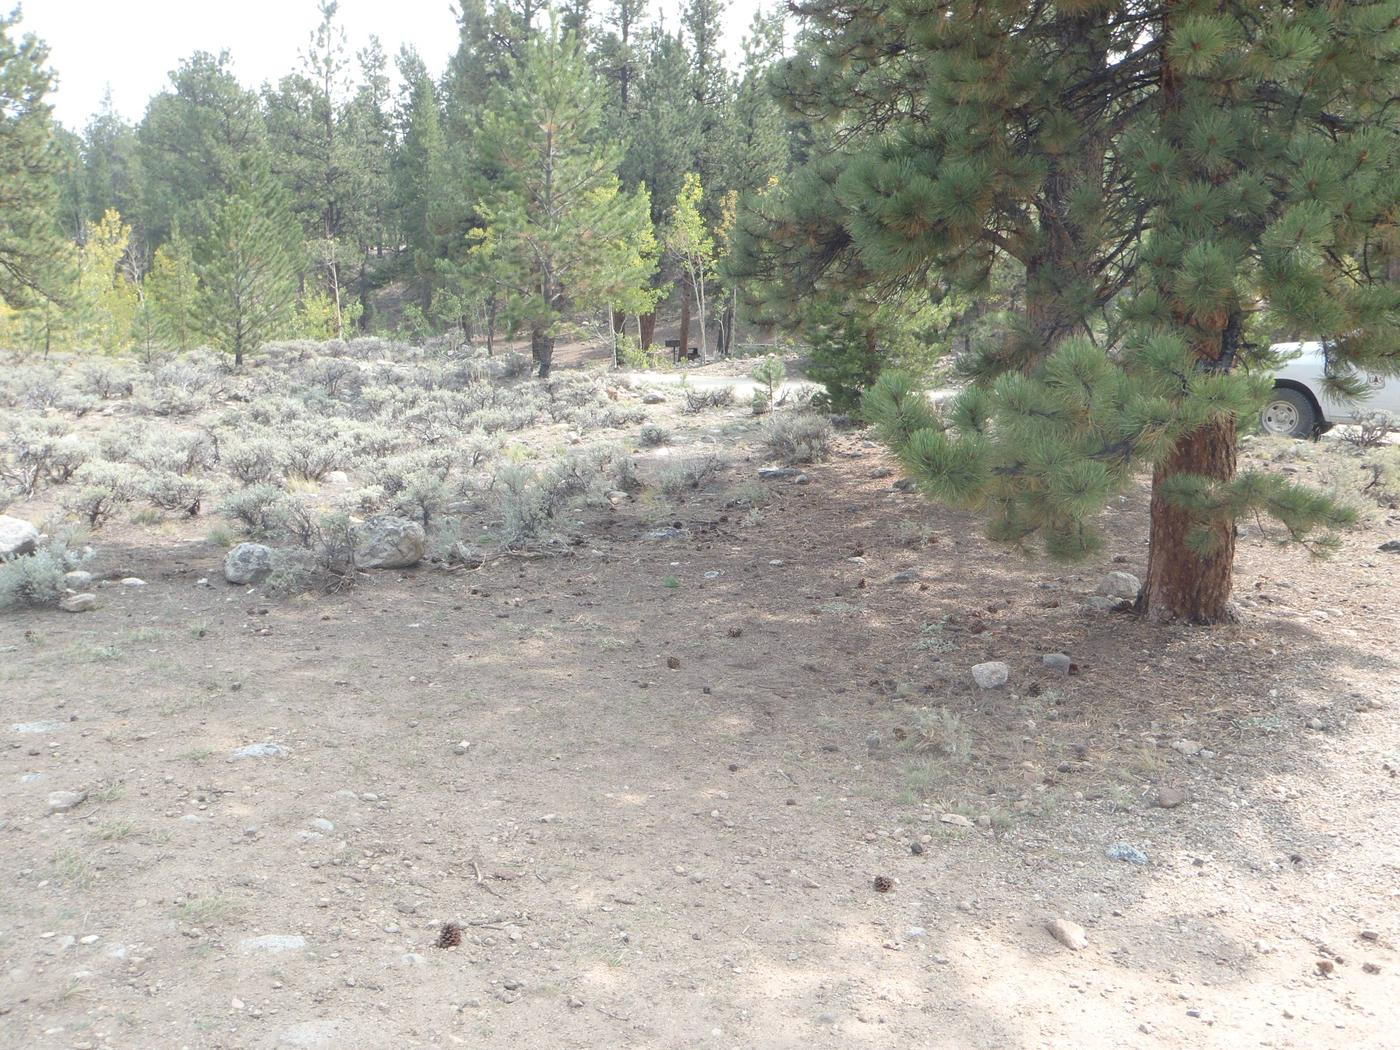 White Star Campground, site 47 clearing